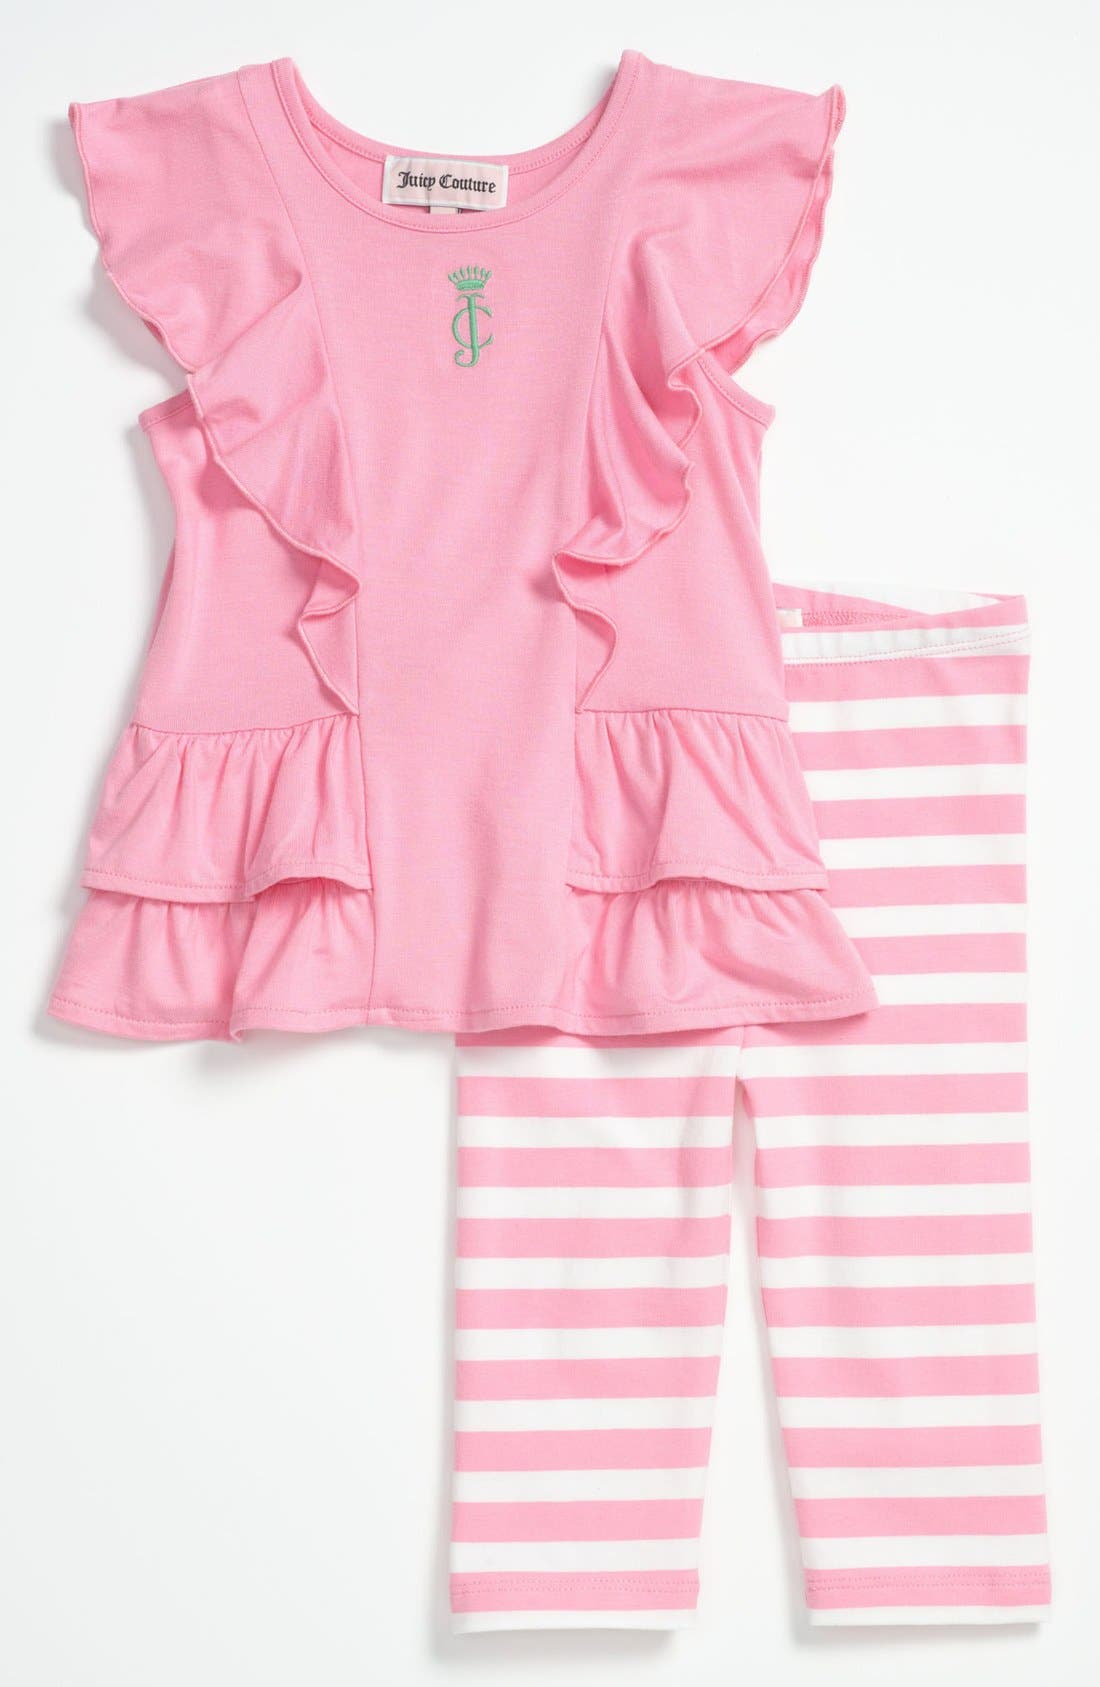 Alternate Image 1 Selected - Juicy Couture Tunic & Leggings (Baby)